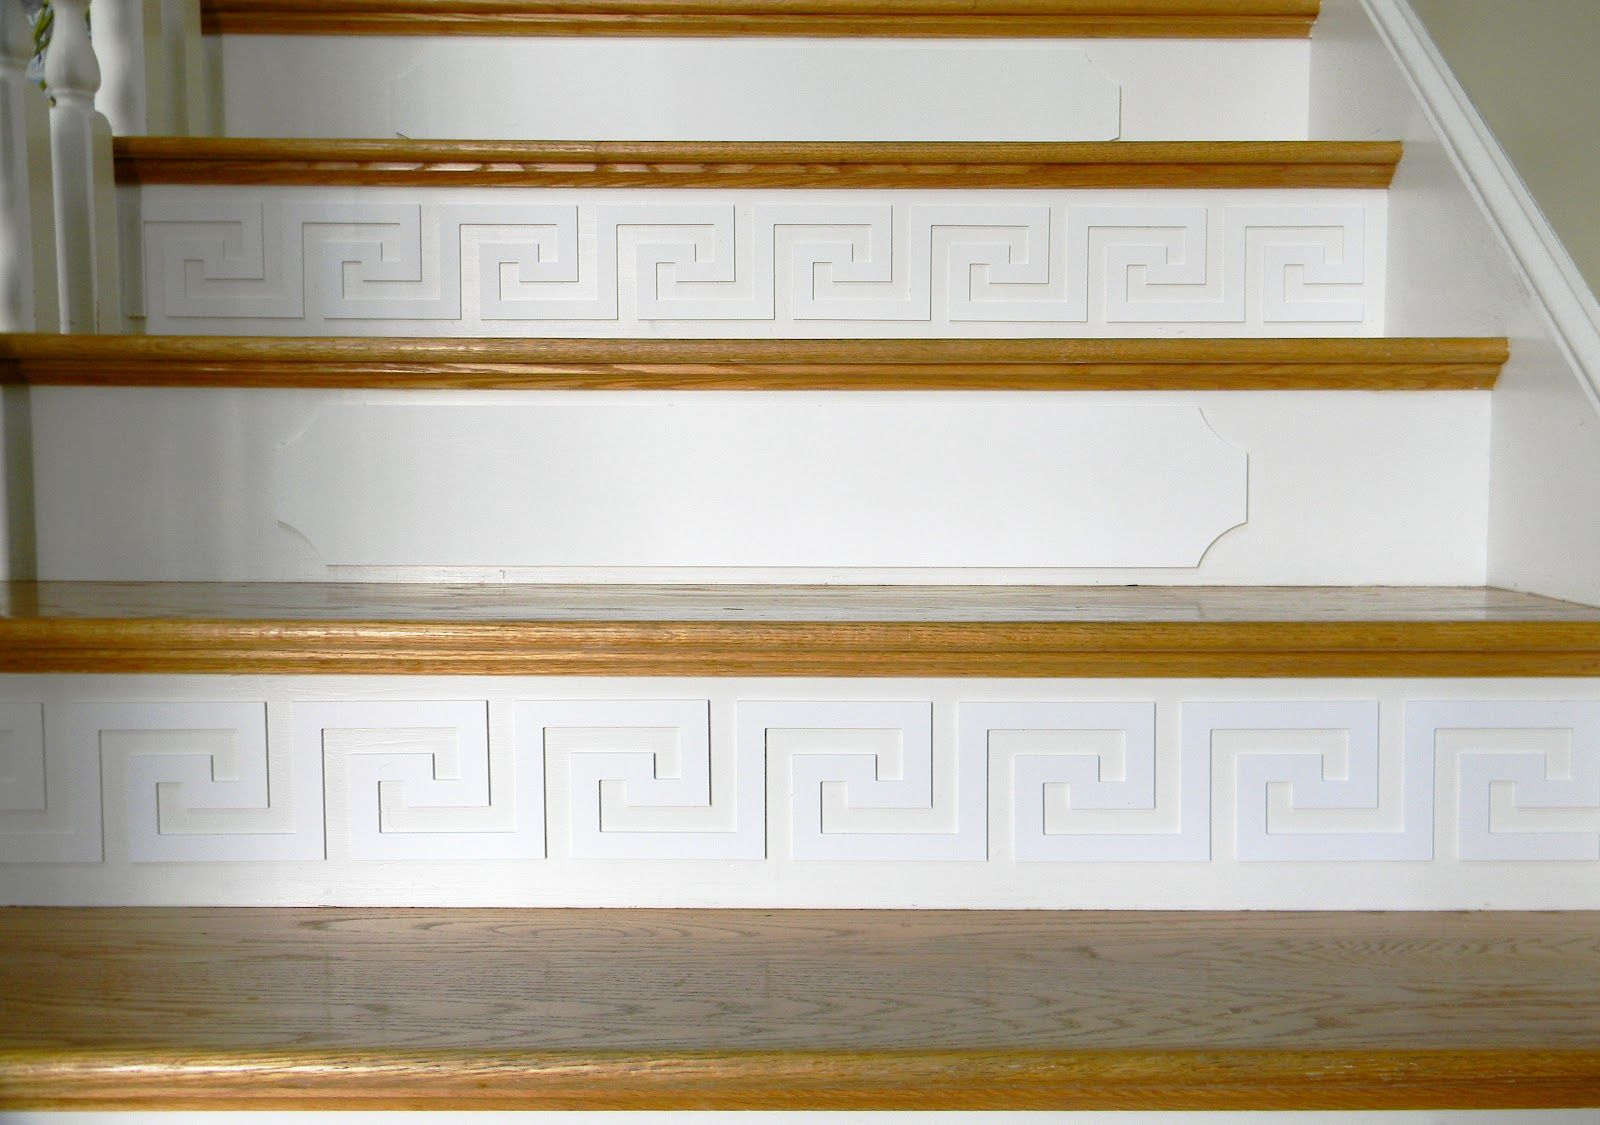 Cute Idea To Use Overlays On Stairs. I Wouldnu0027t Mix/match Like